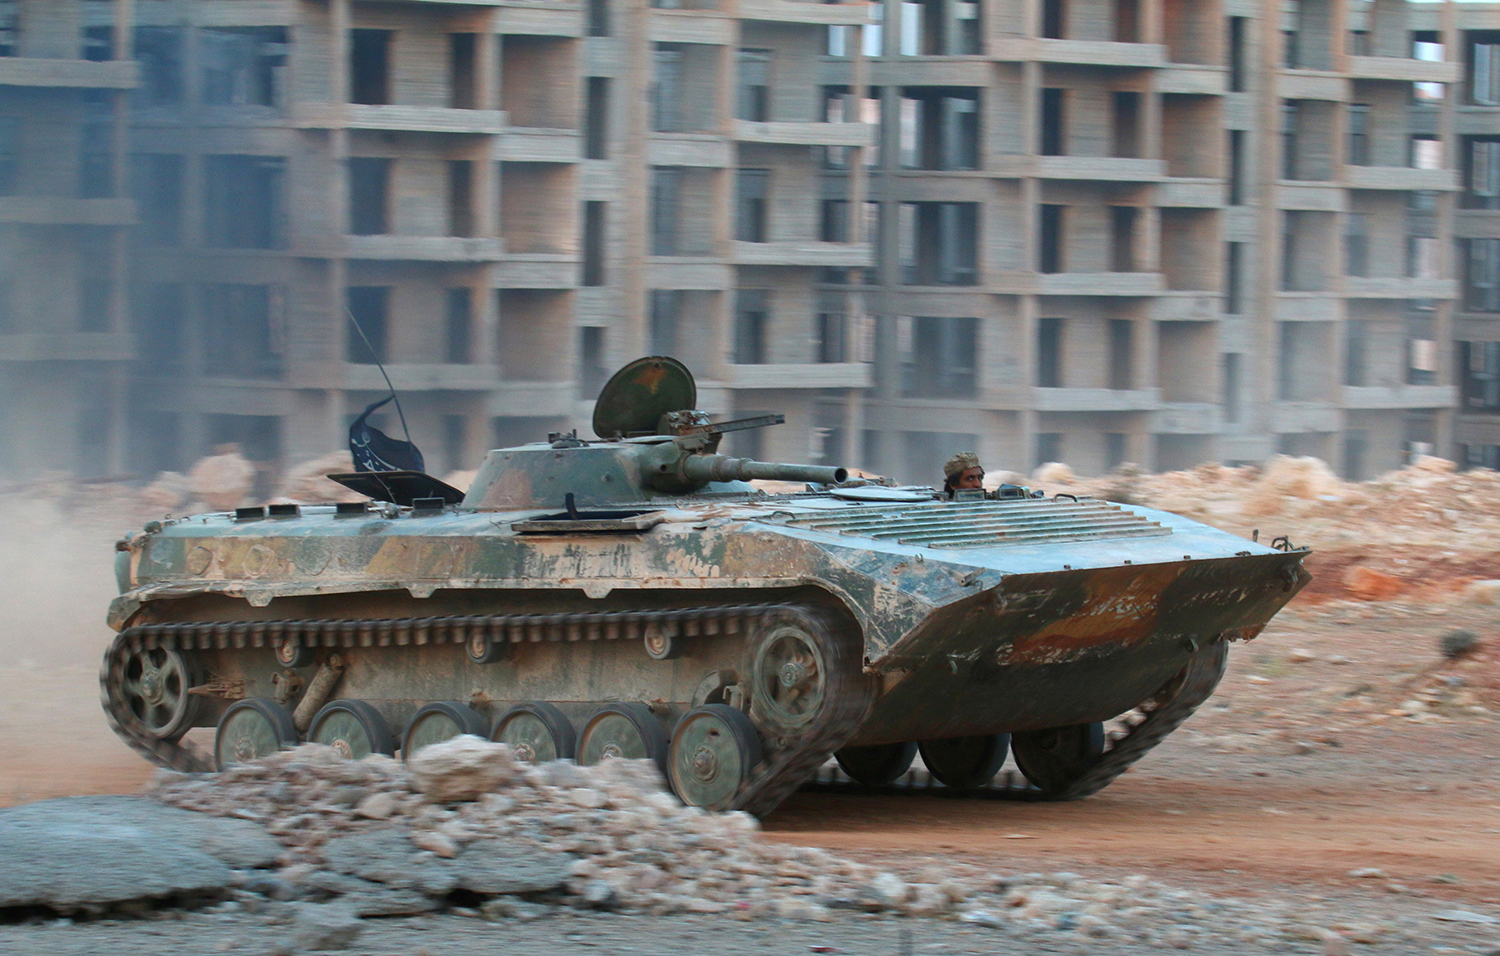 ALEPPO 2016-09-27 A fighter of the Syrian Islamist rebel group Jabhat Fateh al-Sham rides in an armored vehicle in the 1070 Apartment Project area in southwestern Aleppo, Syria August 5, 2016. REUTERS/Ammar Abdullah/File Photo Photo: / REUTERS / TT / kod 72000